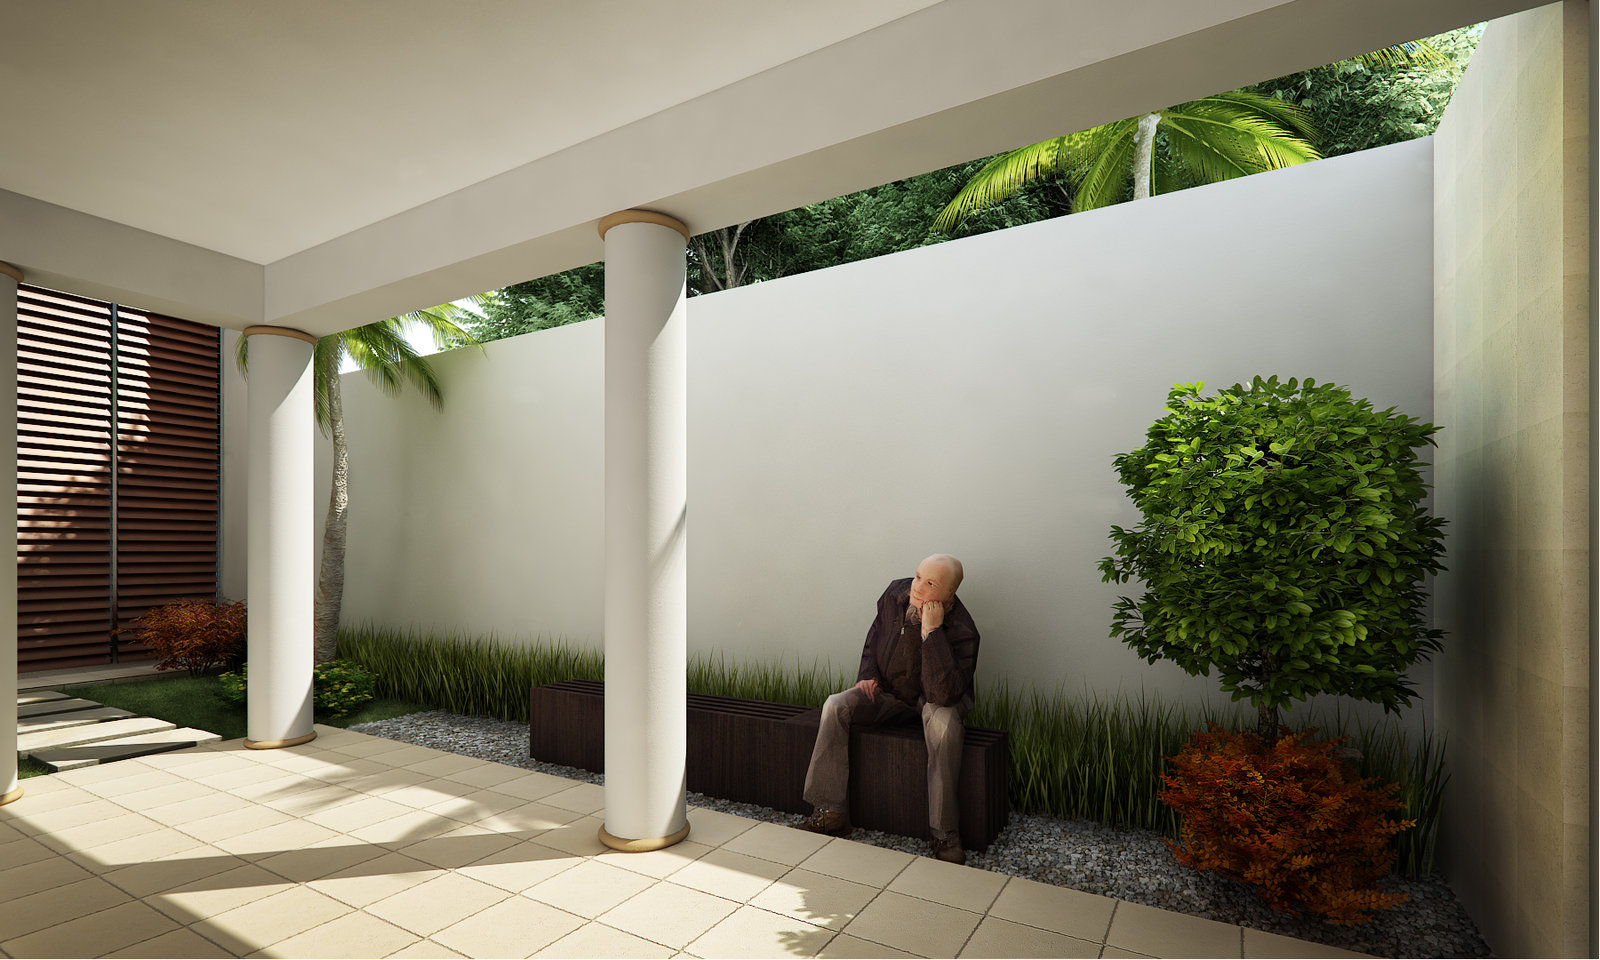 Courtyard design and landscaping ideas for Small house design inside and outside